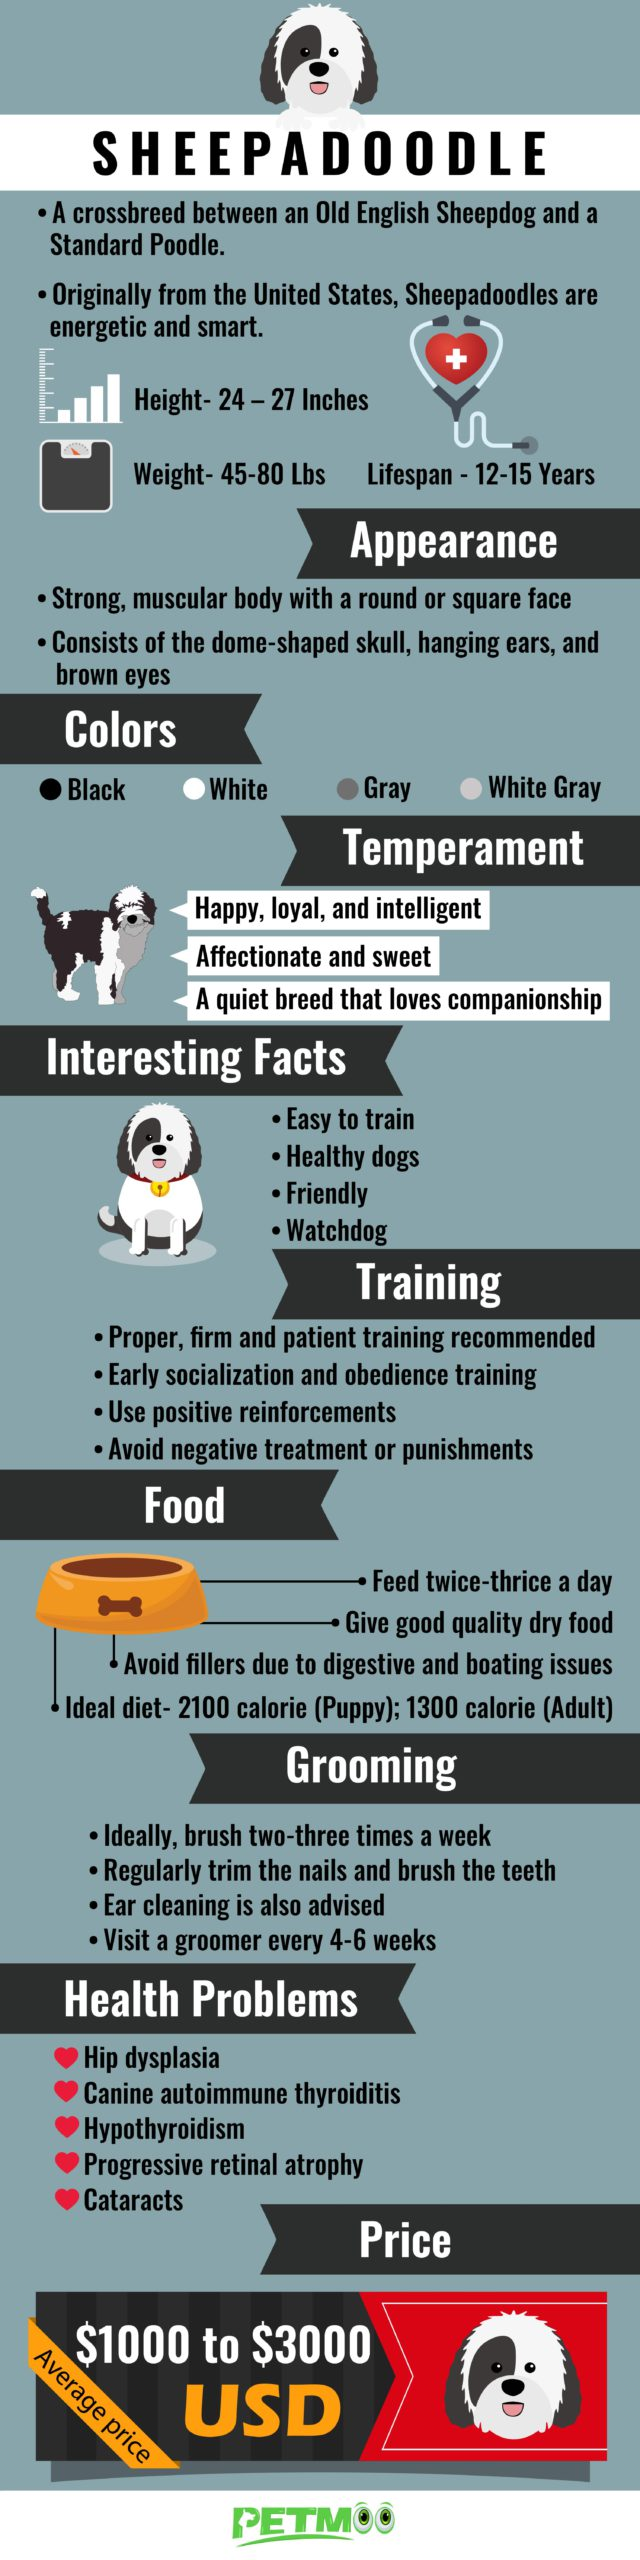 Sheepadoodle Infographic